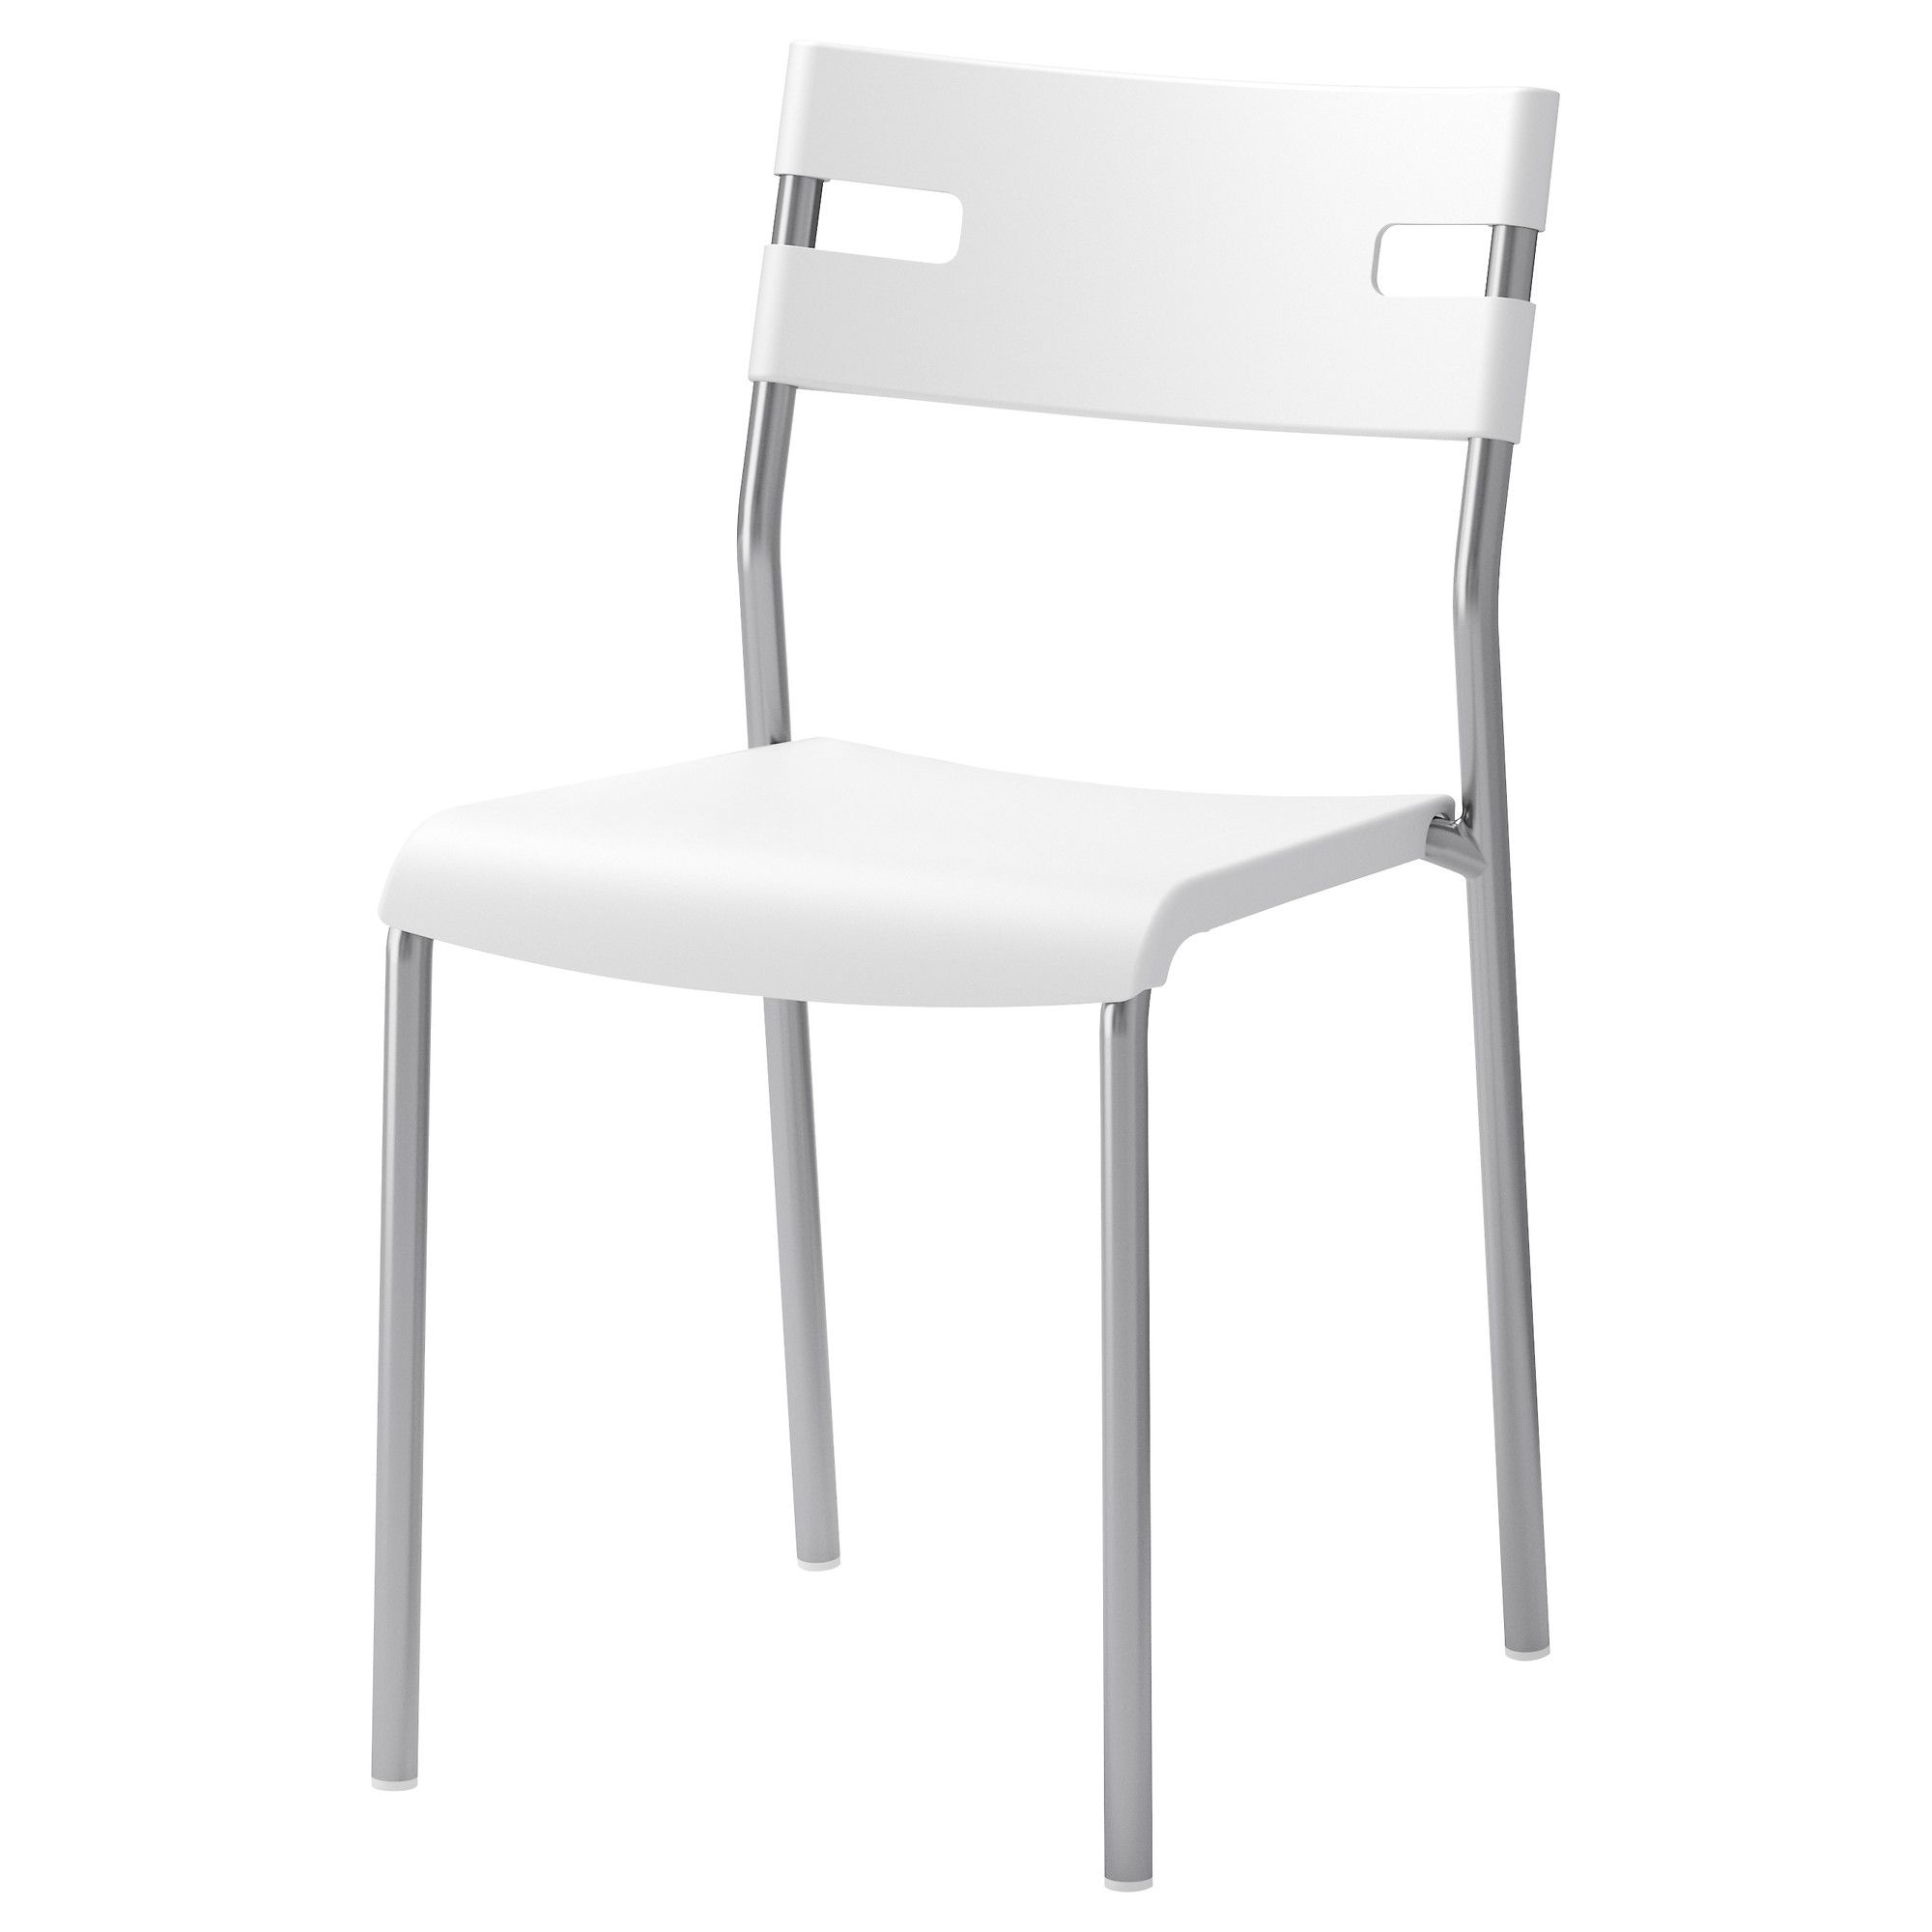 Laver Chair Ikea 10 Chrome And White Supposedly Goes With Table Not Sold On The But Super